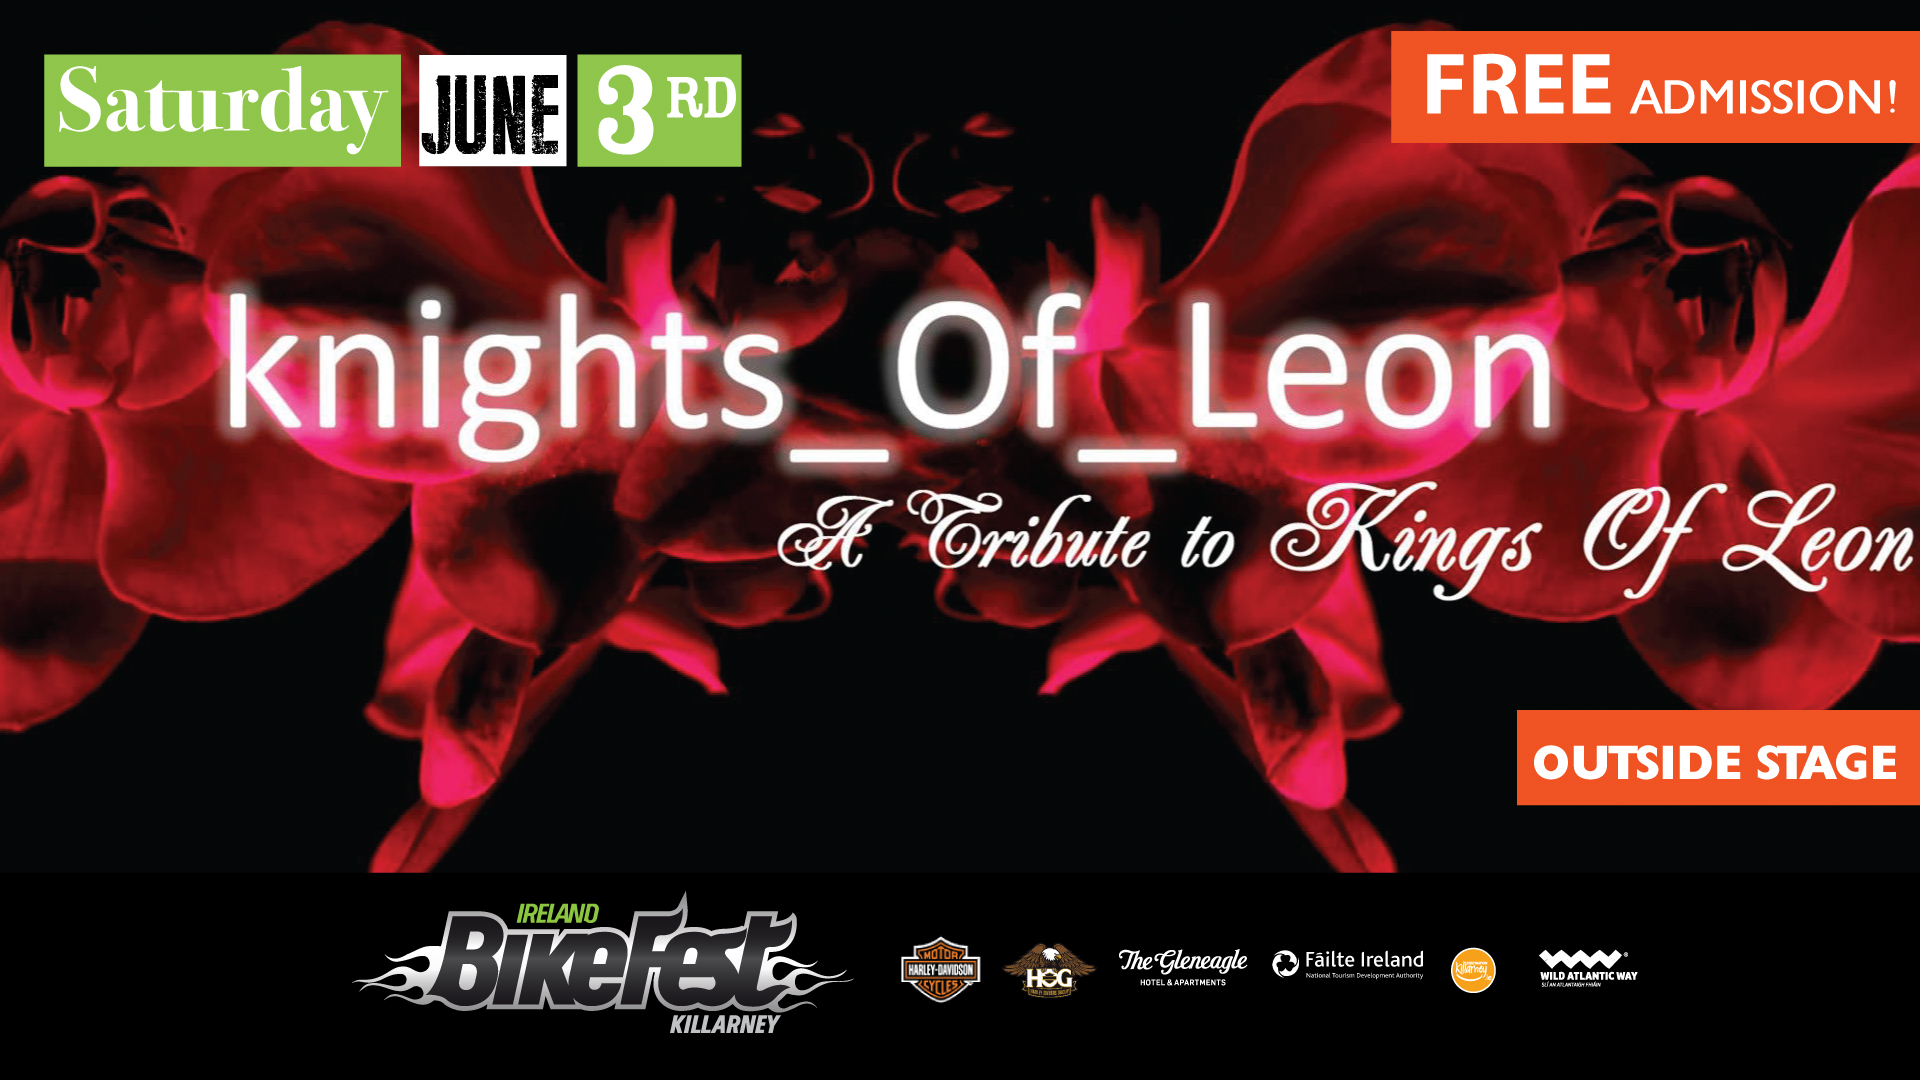 Ireland-BikeFest-Entertainment-Screen-KOL-Saturday-3rd-June-1920-1080